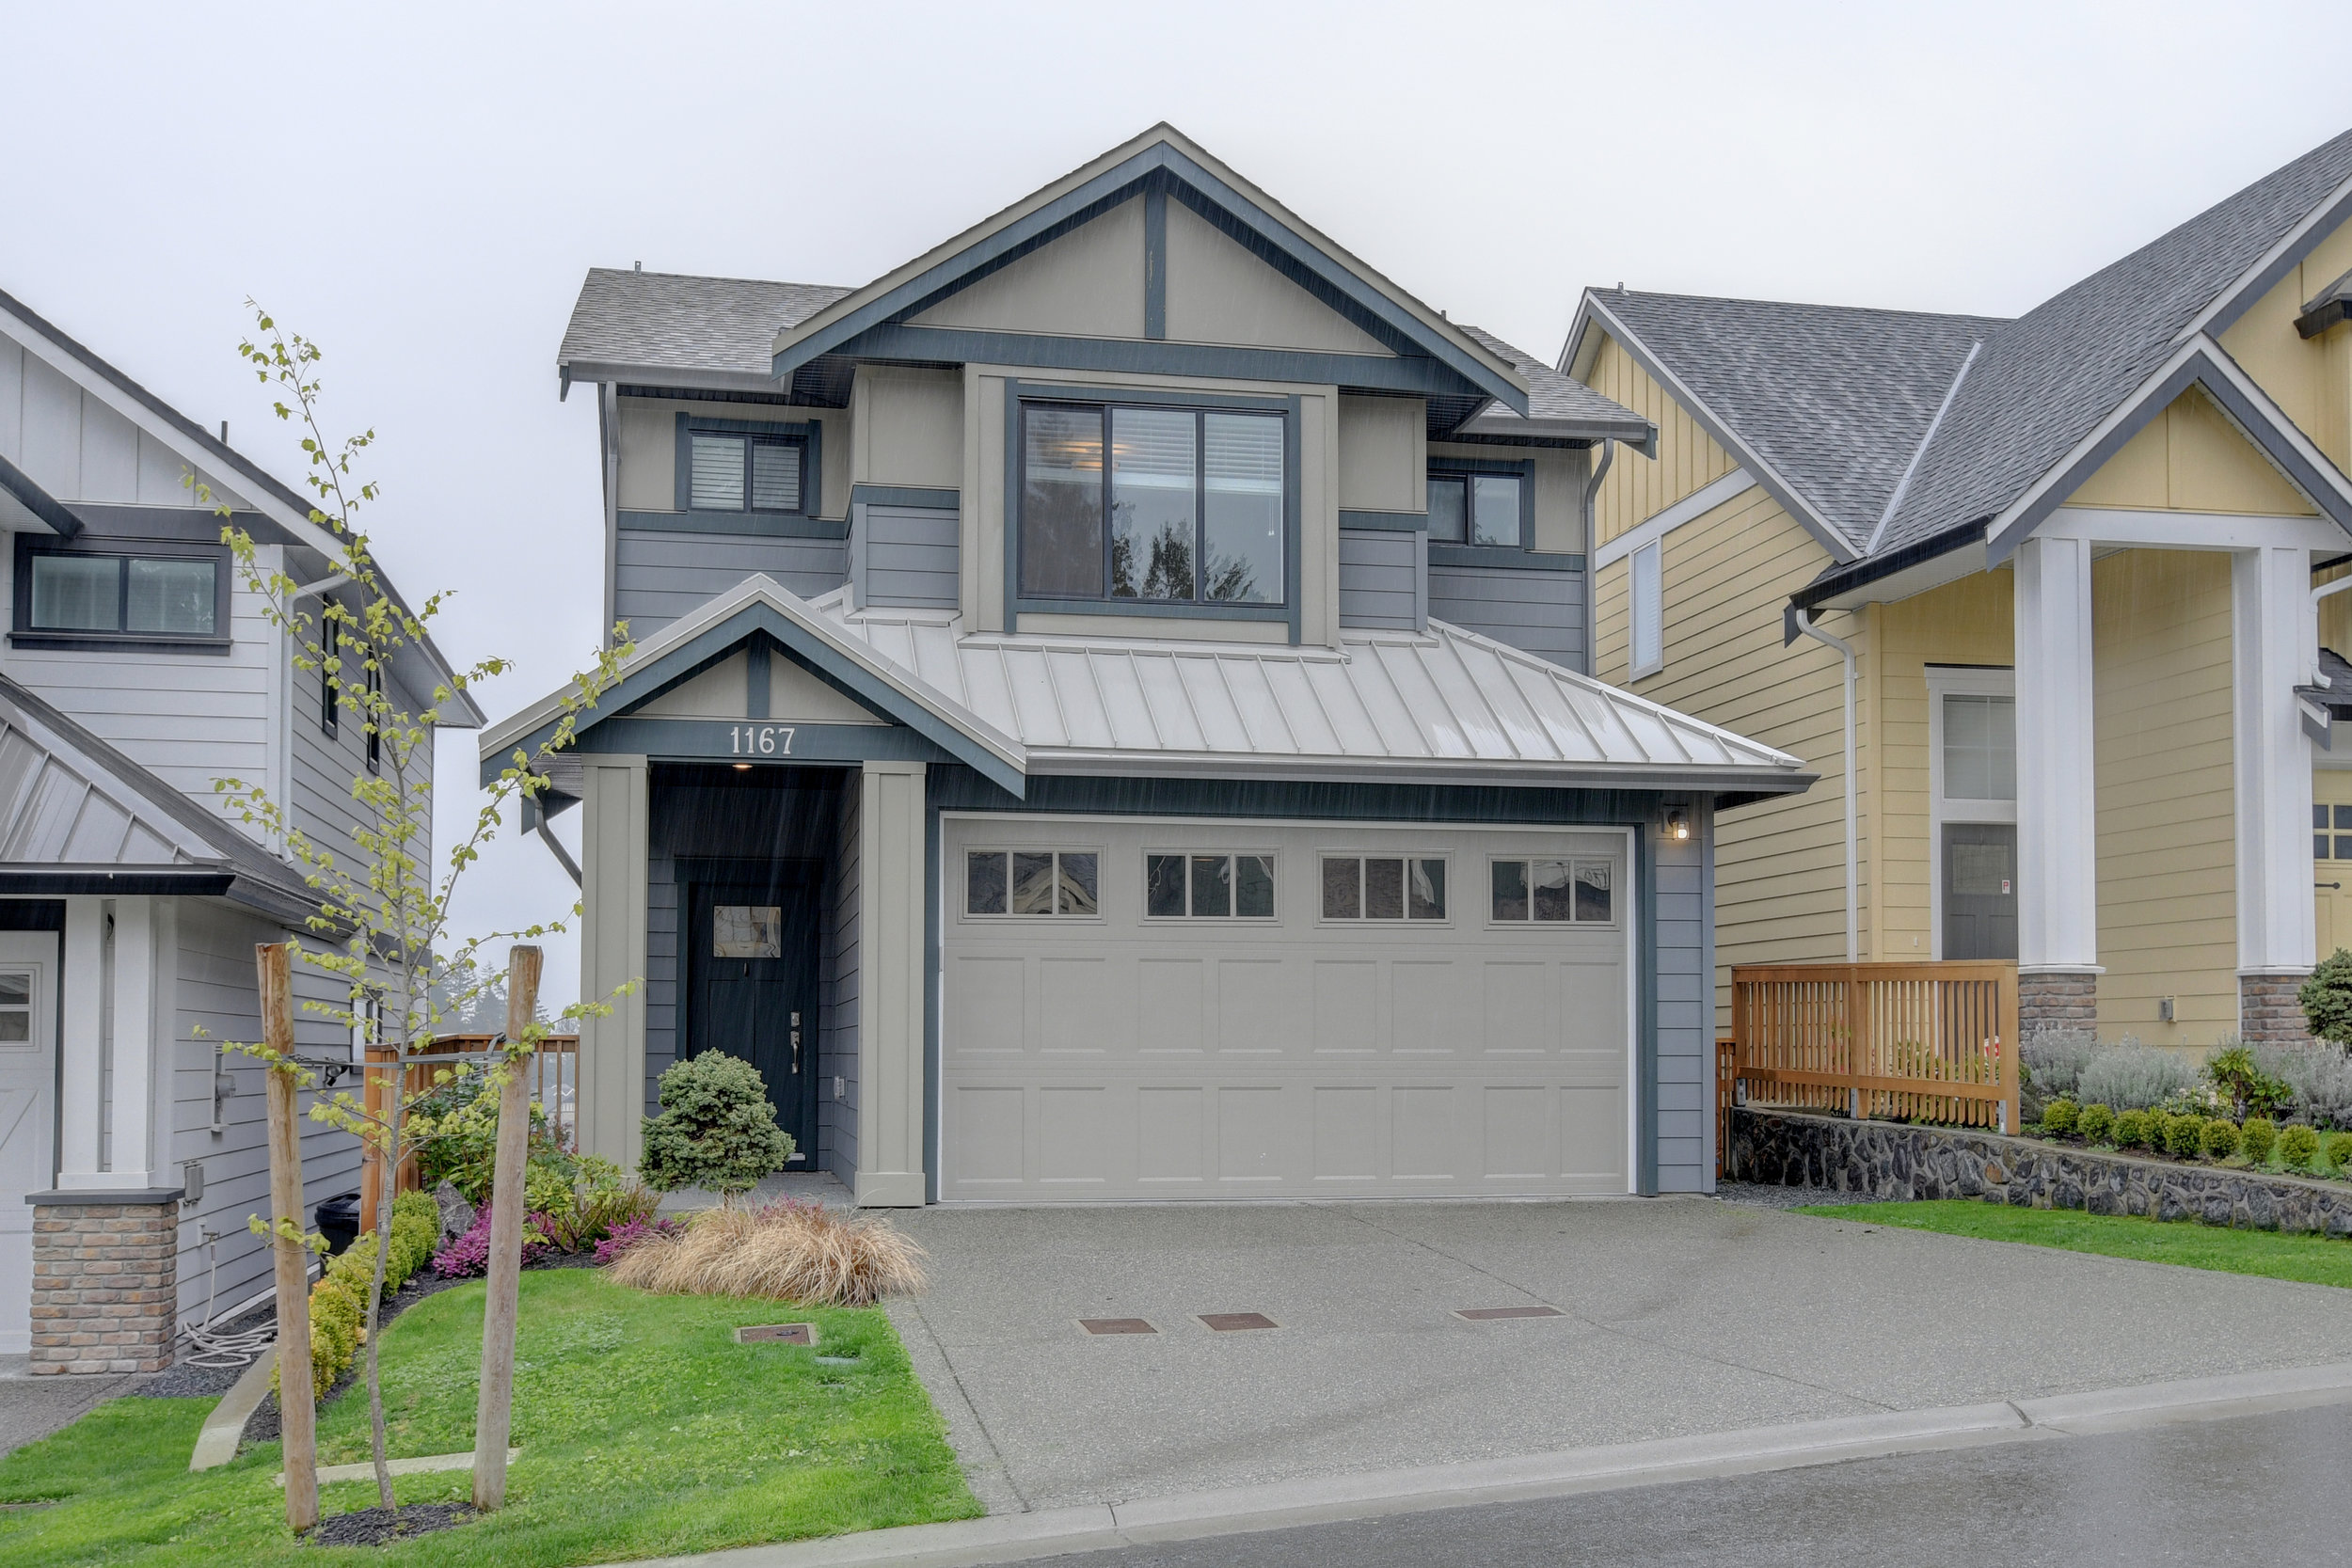 1167 BOMBARDIER CRESCENT - Central location, like new family home with the perfect layout!